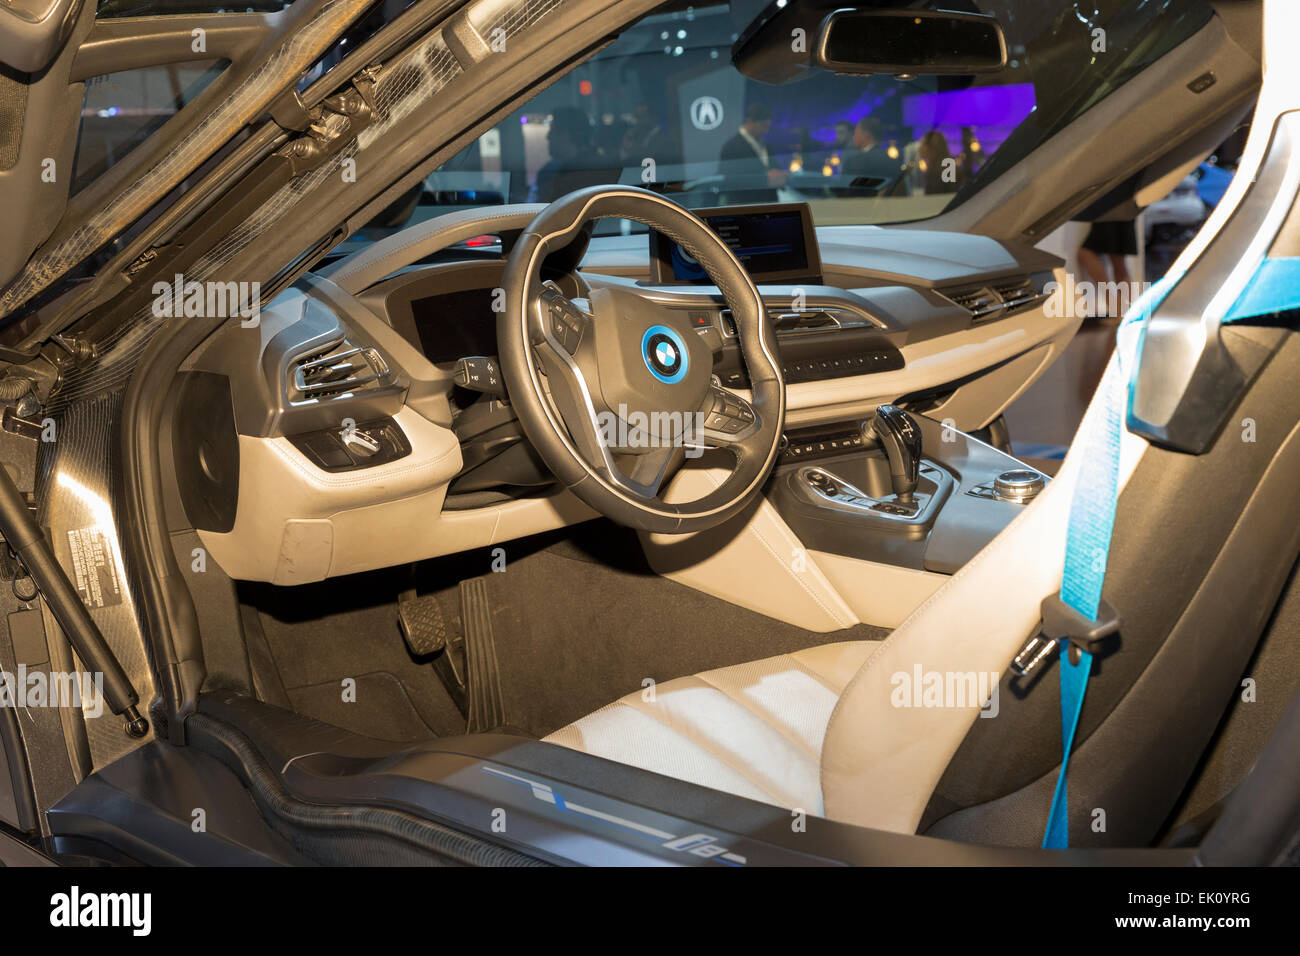 new york ny april 2 2015 interior of bmw i8 best green car of stock photo royalty free. Black Bedroom Furniture Sets. Home Design Ideas